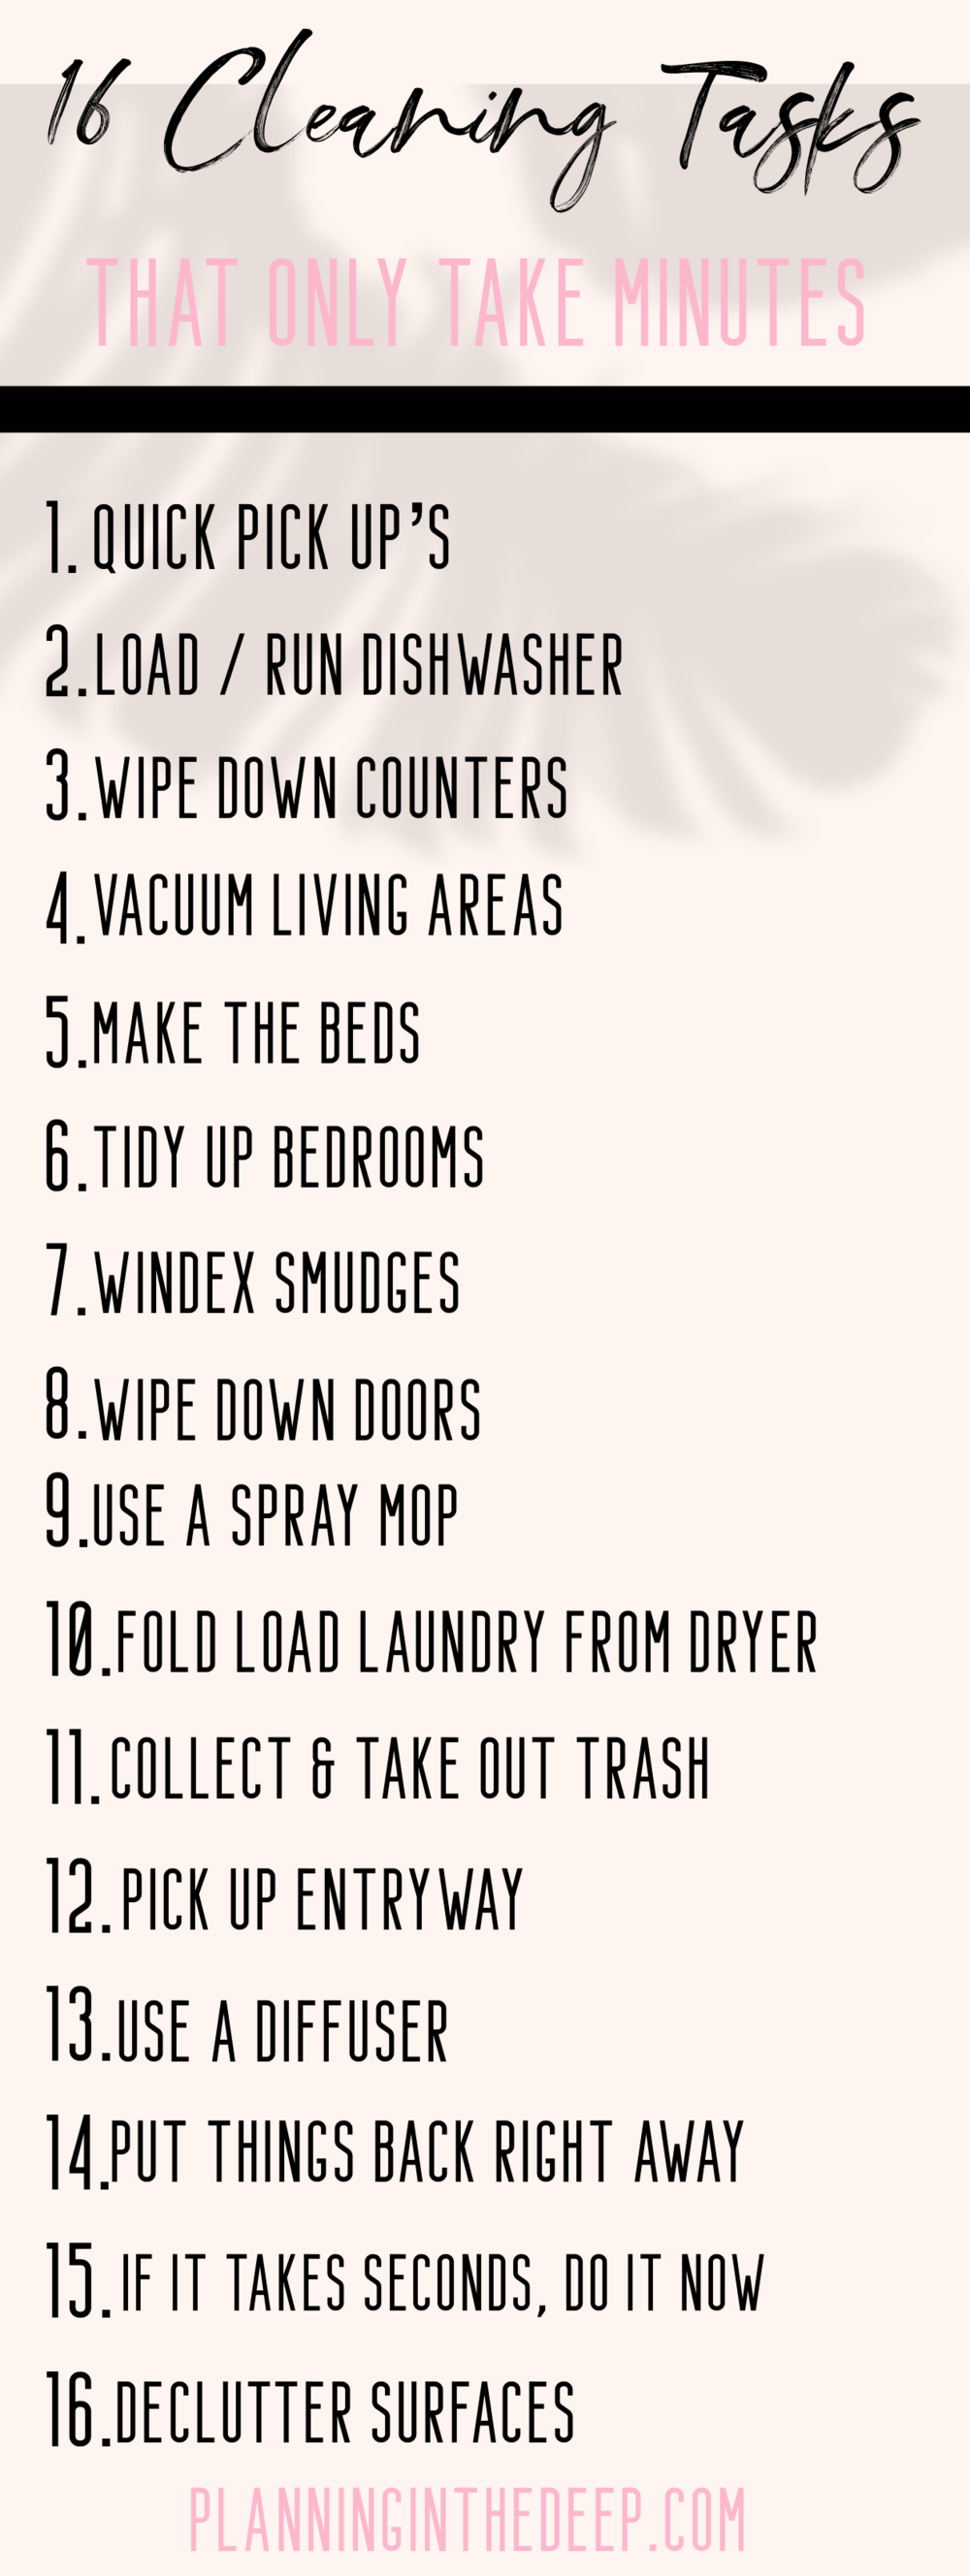 16 Cleaning Tasks That Only Take Minutes